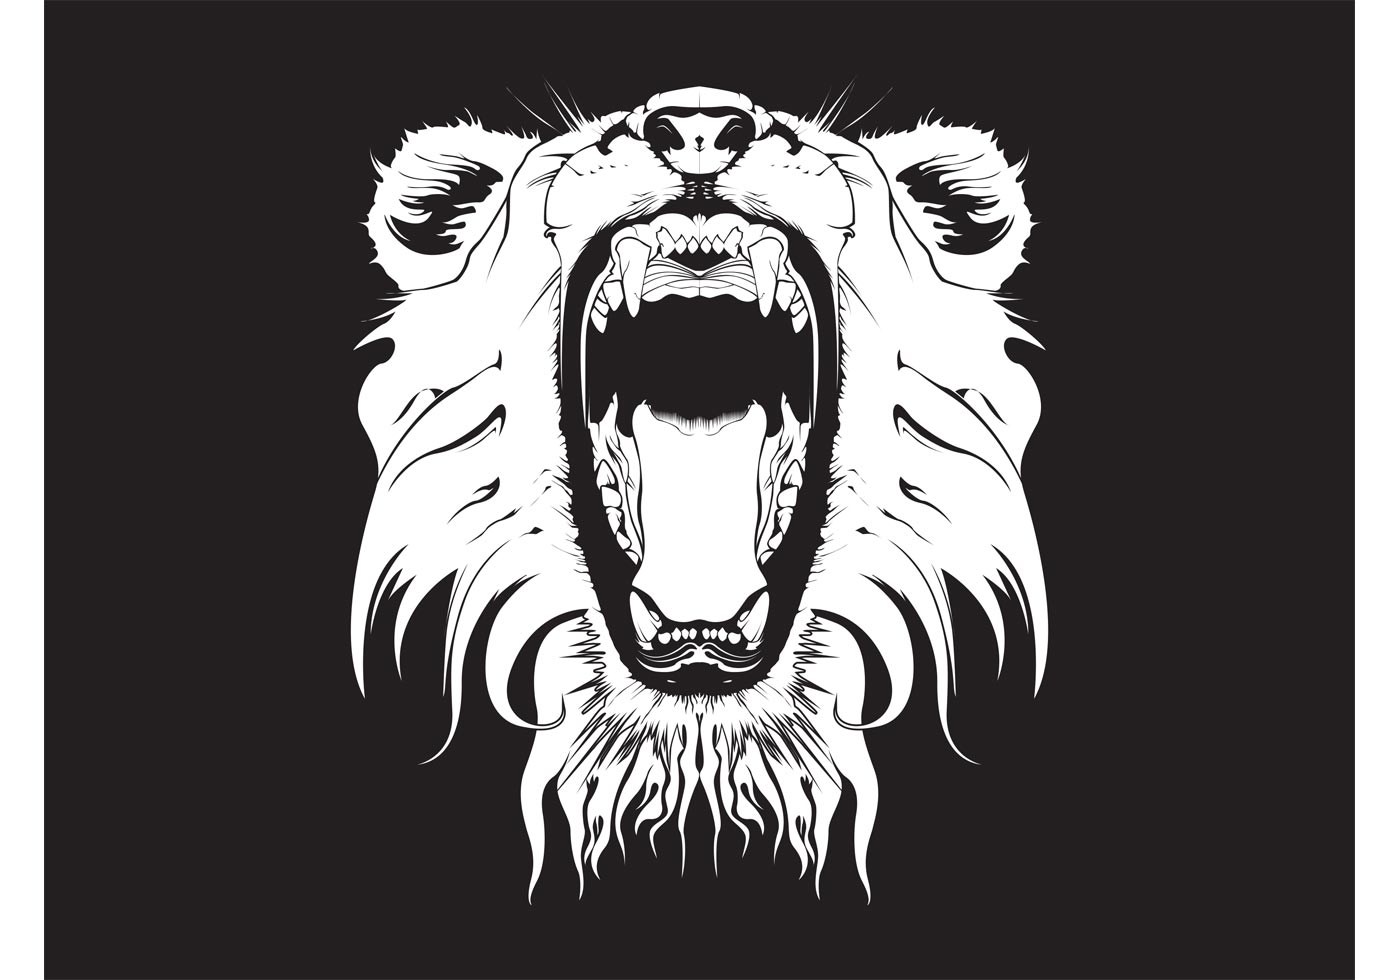 Graphic clipart lion angry picture royalty free download Lion Free Vector Art - (5293 Free Downloads) picture royalty free download